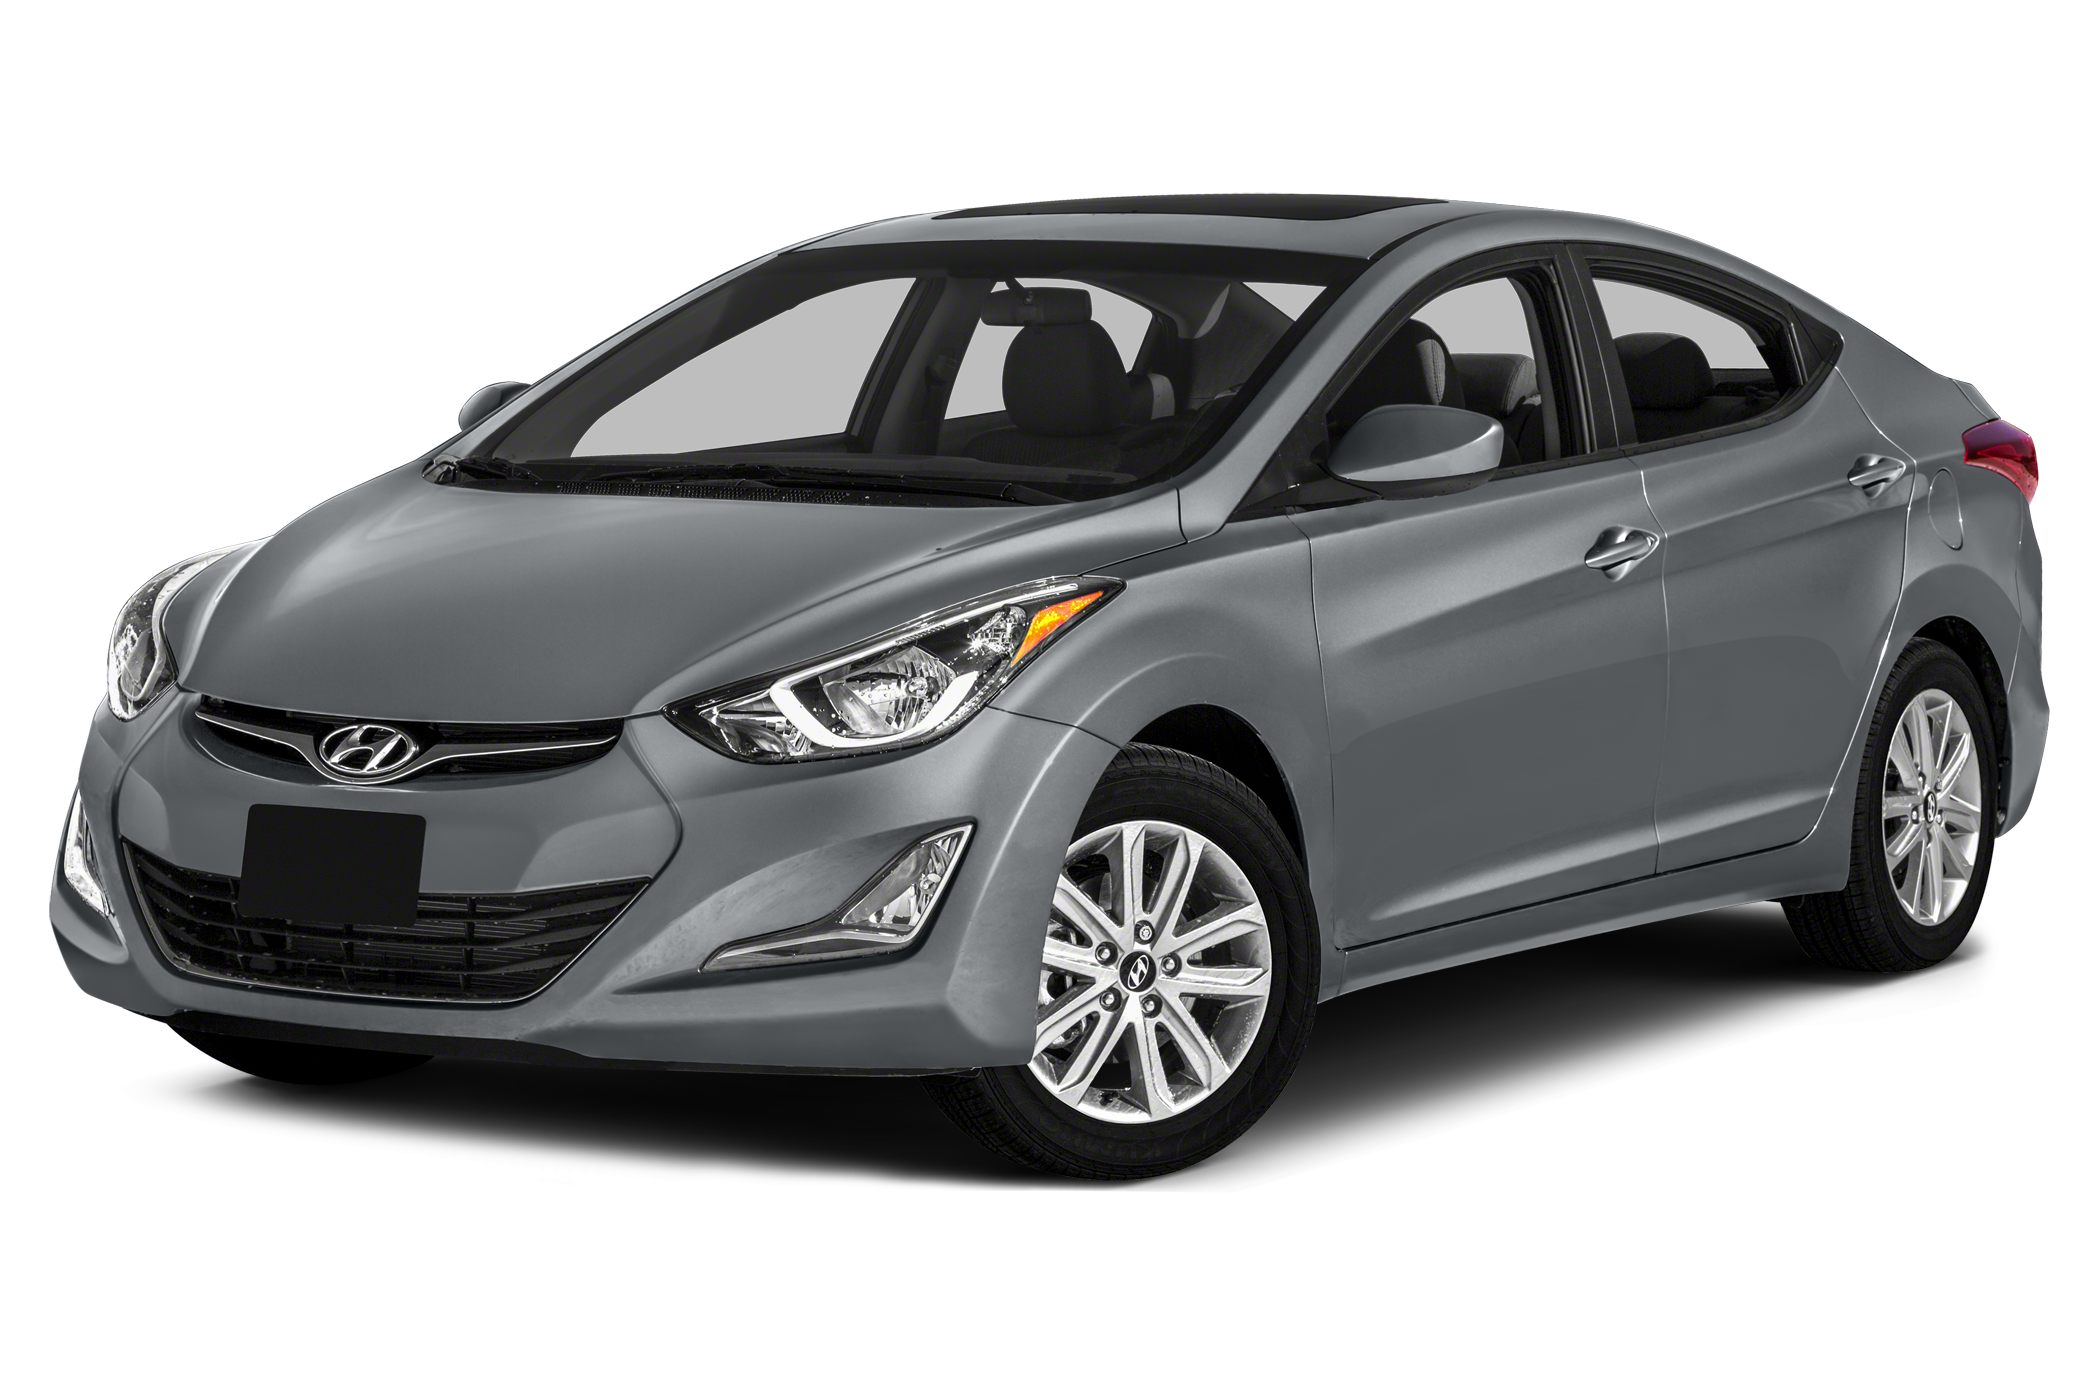 2015 Hyundai Elantra Limited Sedan for sale in Lynnwood for $19,635 with 0 miles